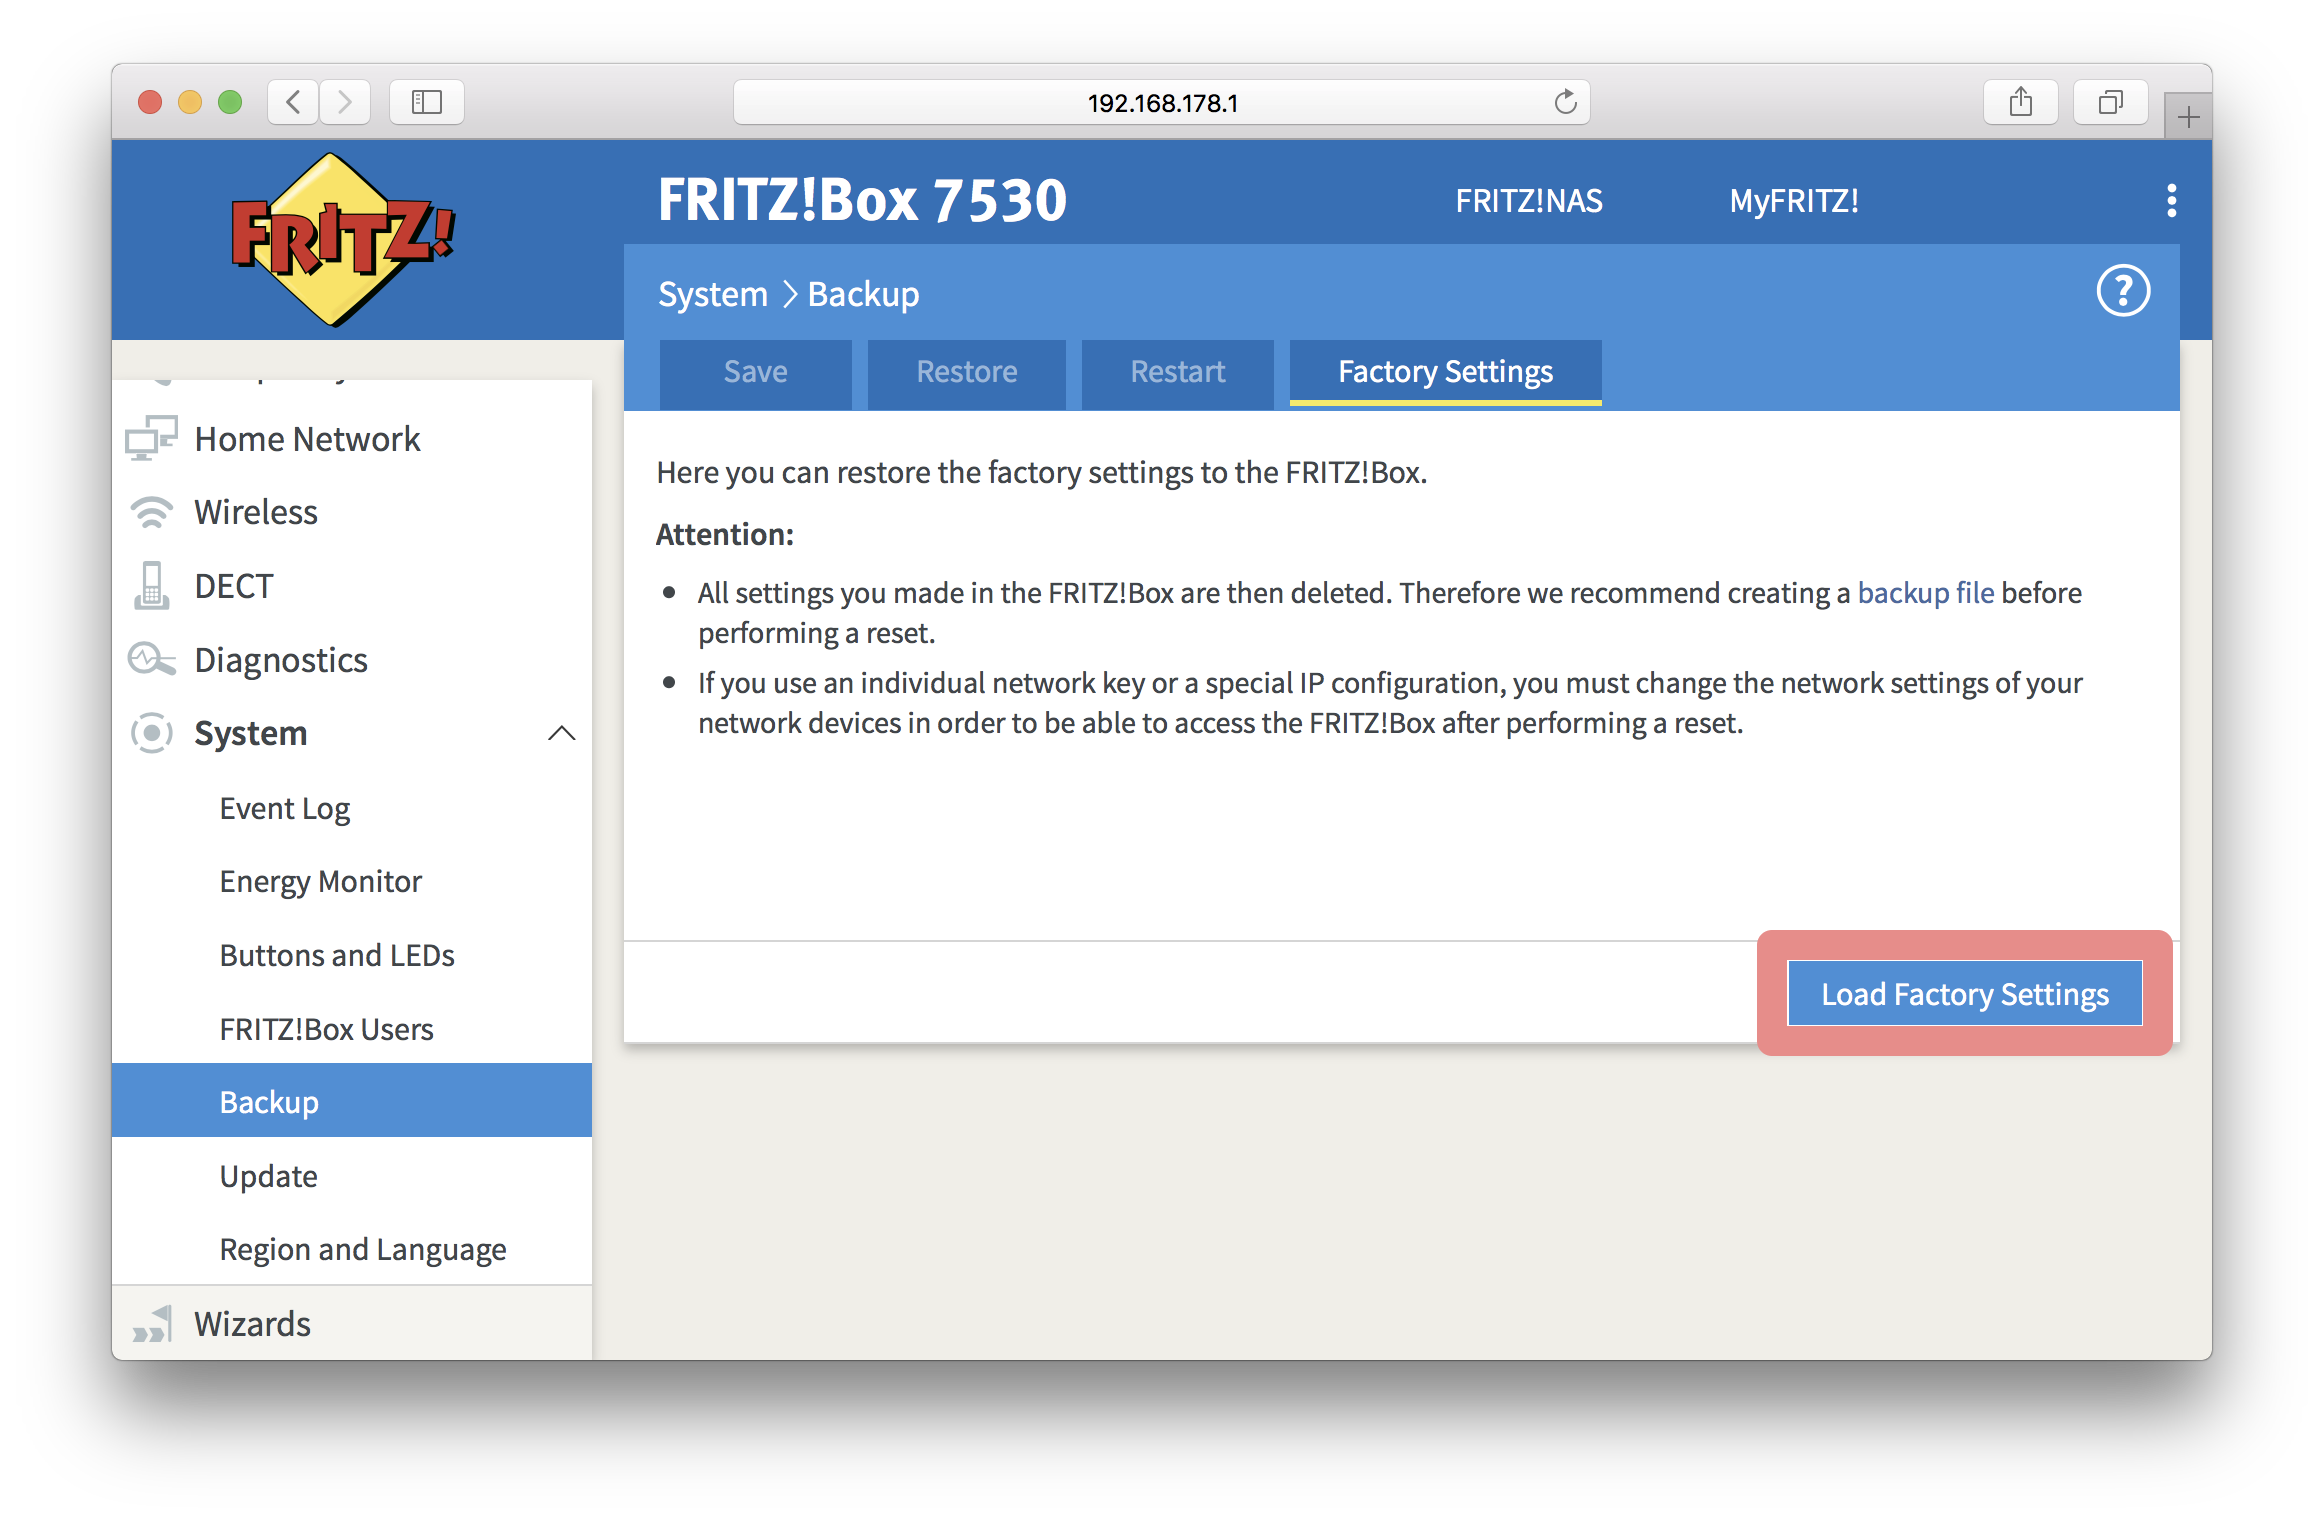 How do I reset my FRITZBox to factory settings